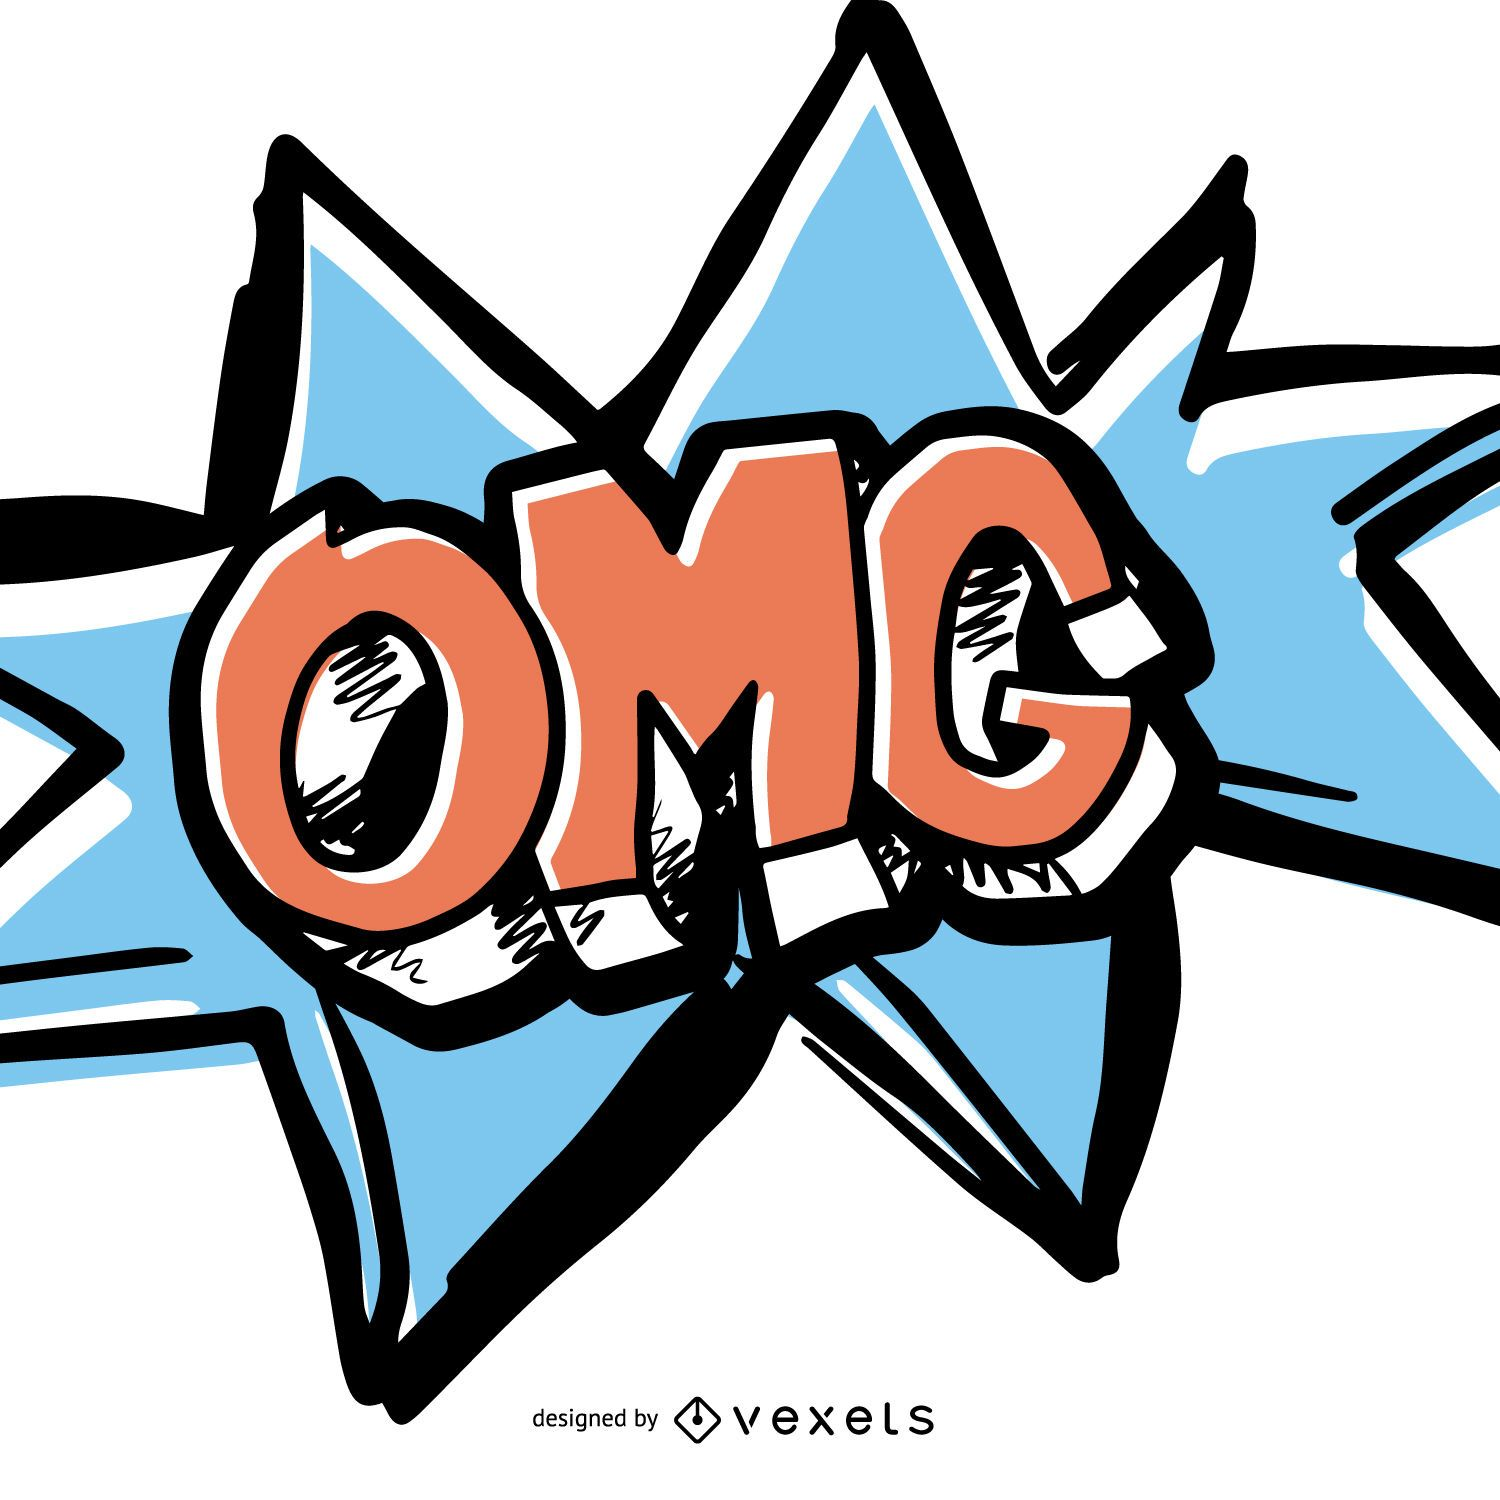 Omg Comic Sound Effect Vector Download